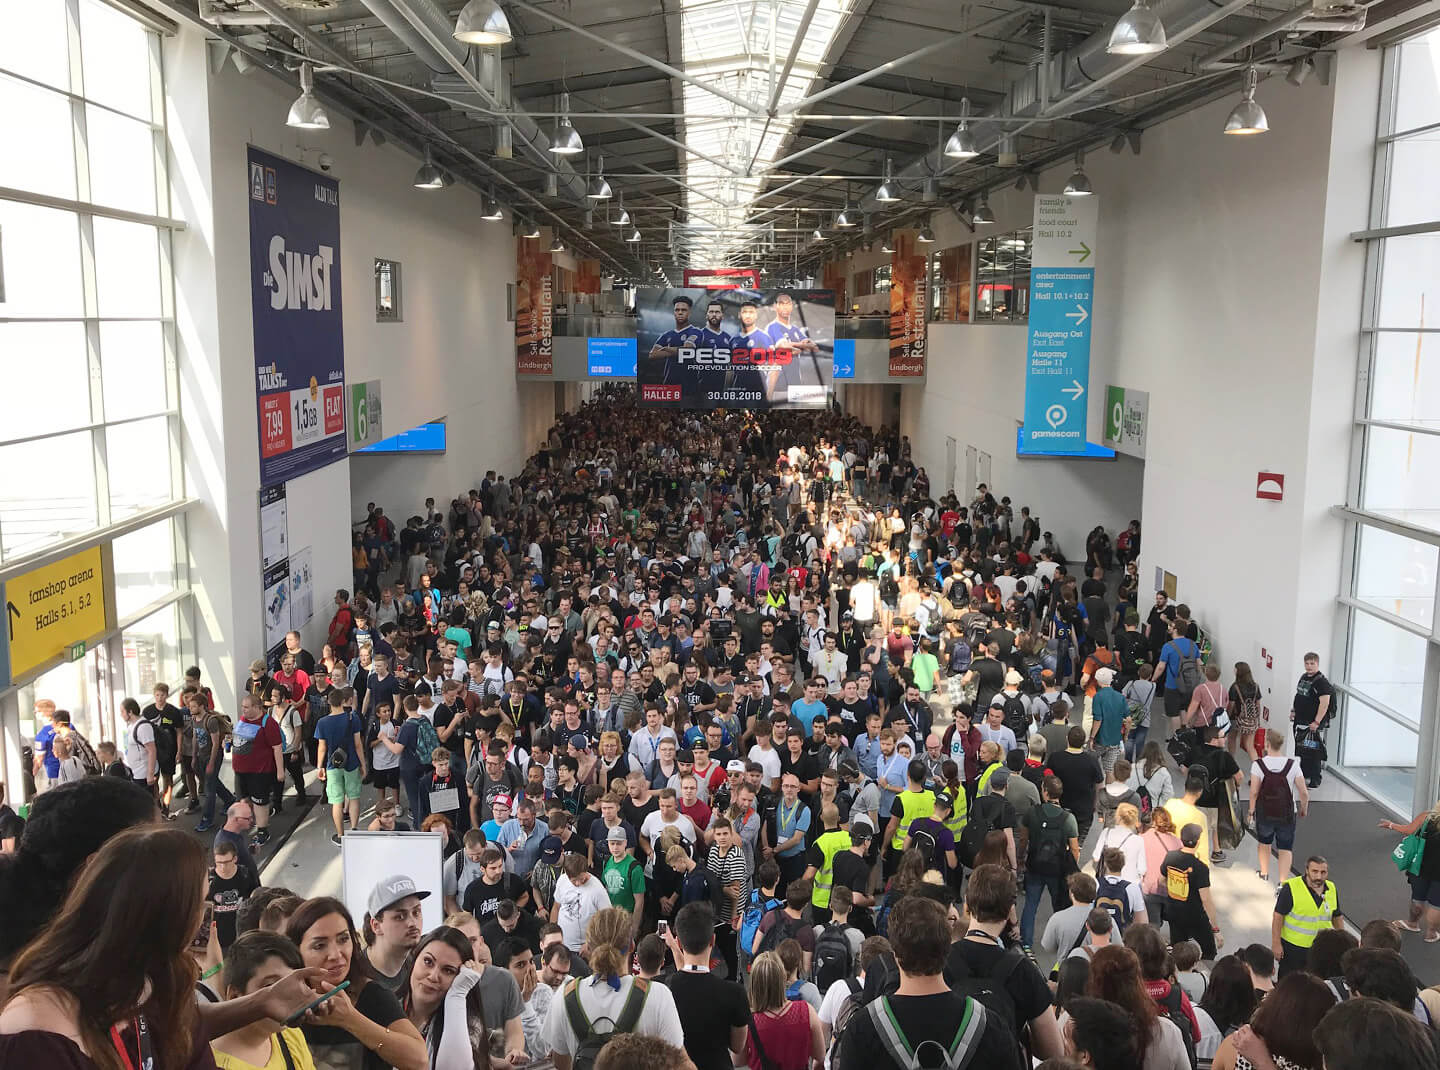 Gamescom: Crowds